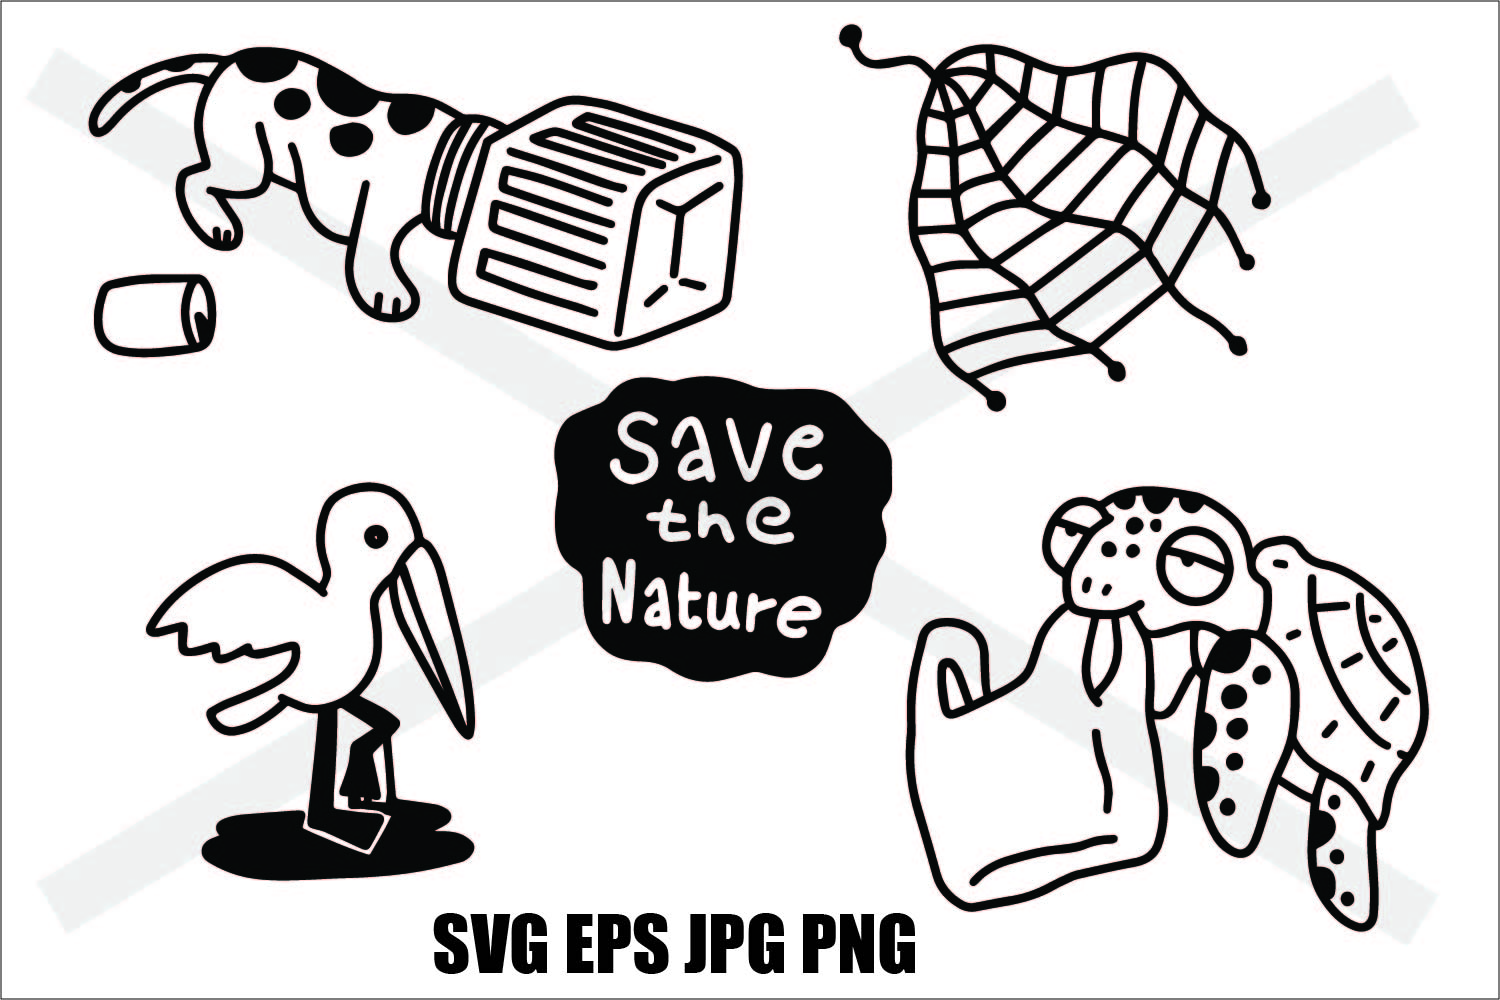 Save The Nature- Thin line and Thick Line - SVG/EPS/JPG/PNG example image 1